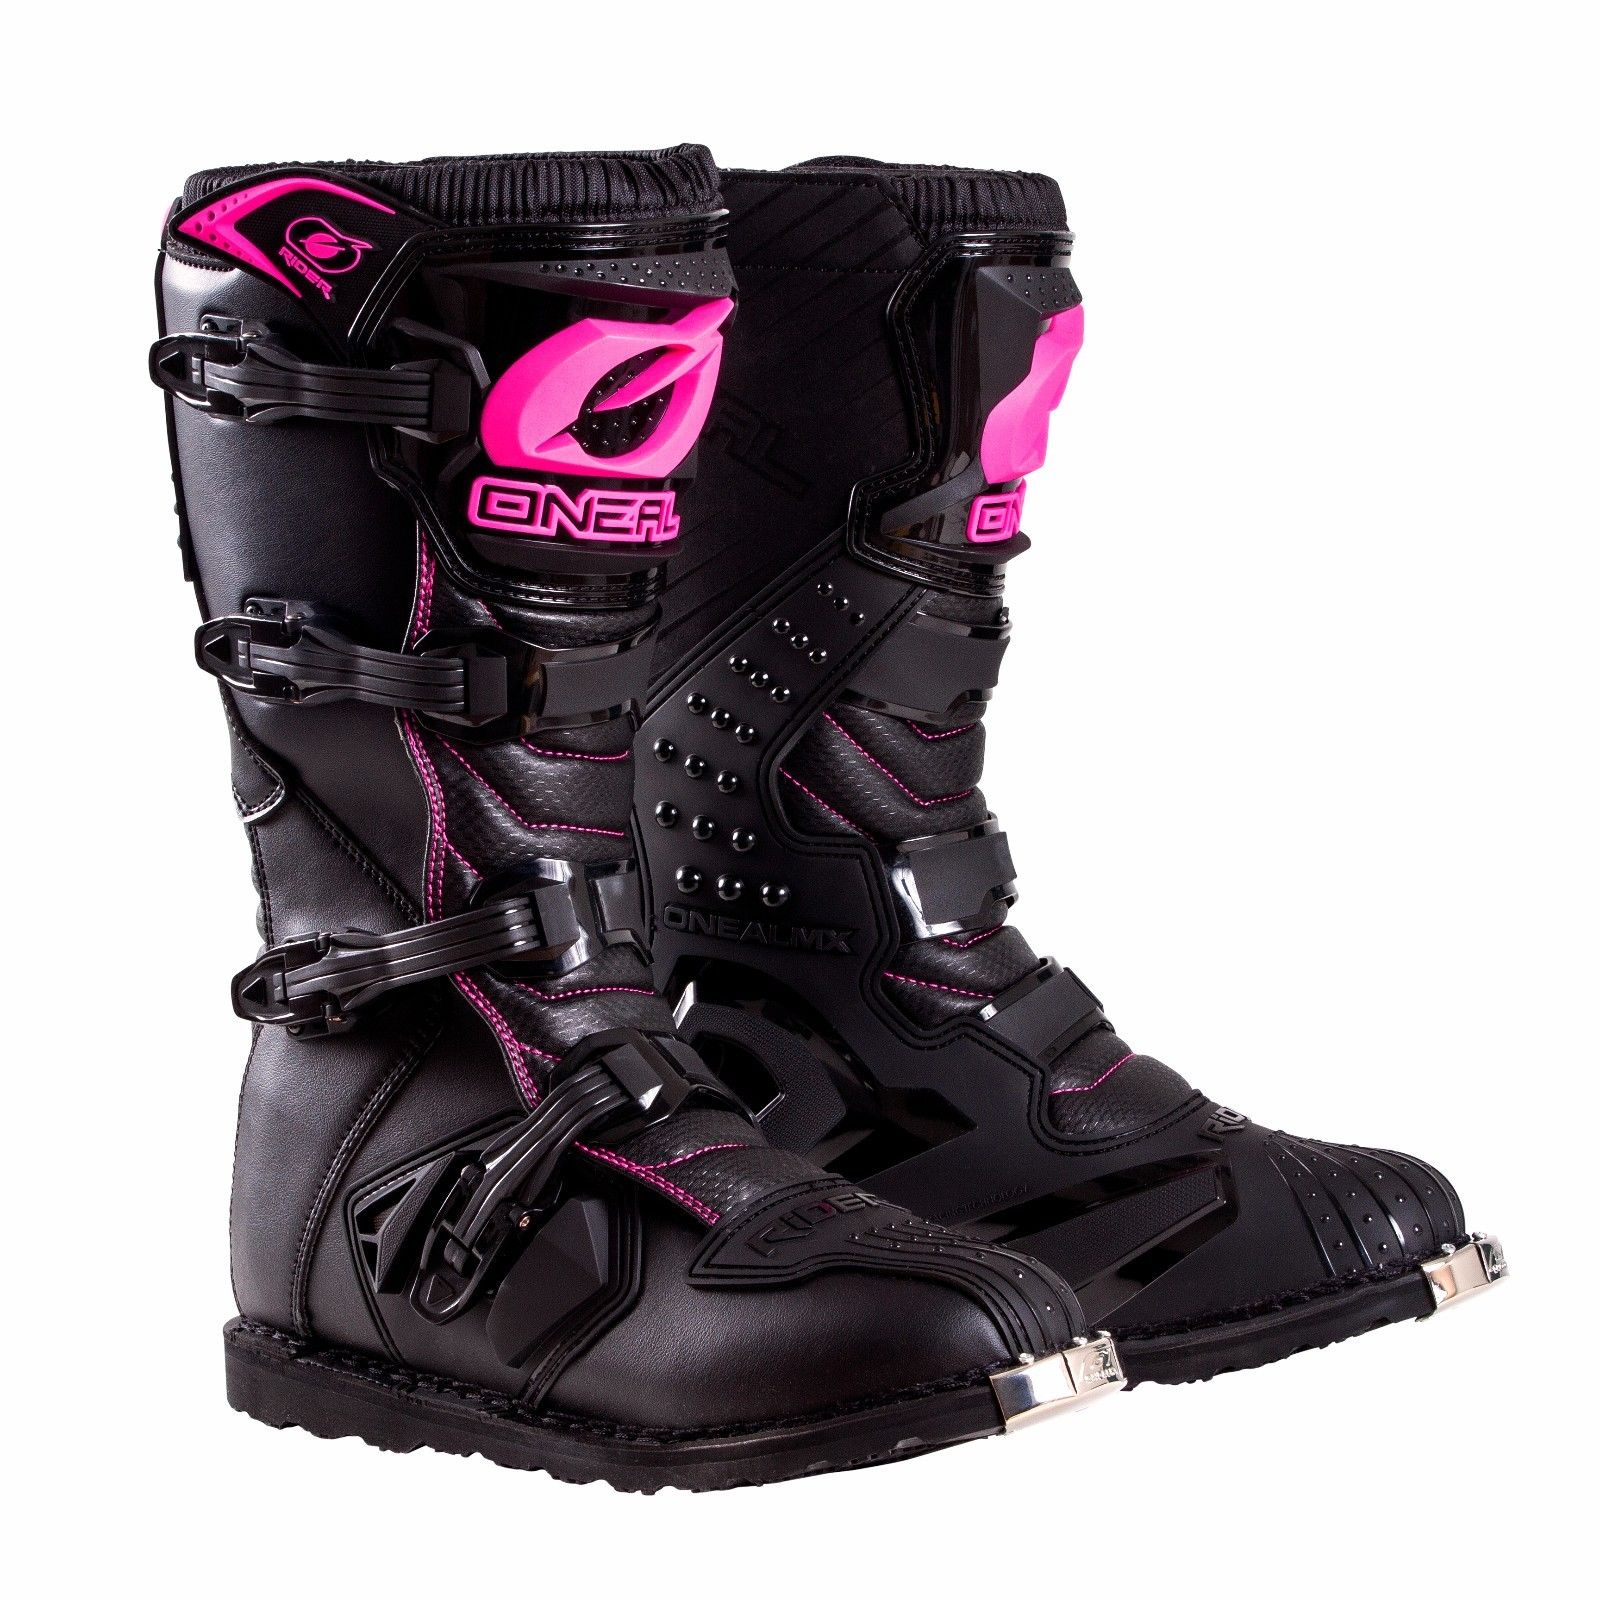 Oneal 2019 Womens Rider Offroad Motocross Boots Black - Pink/Black - 0325